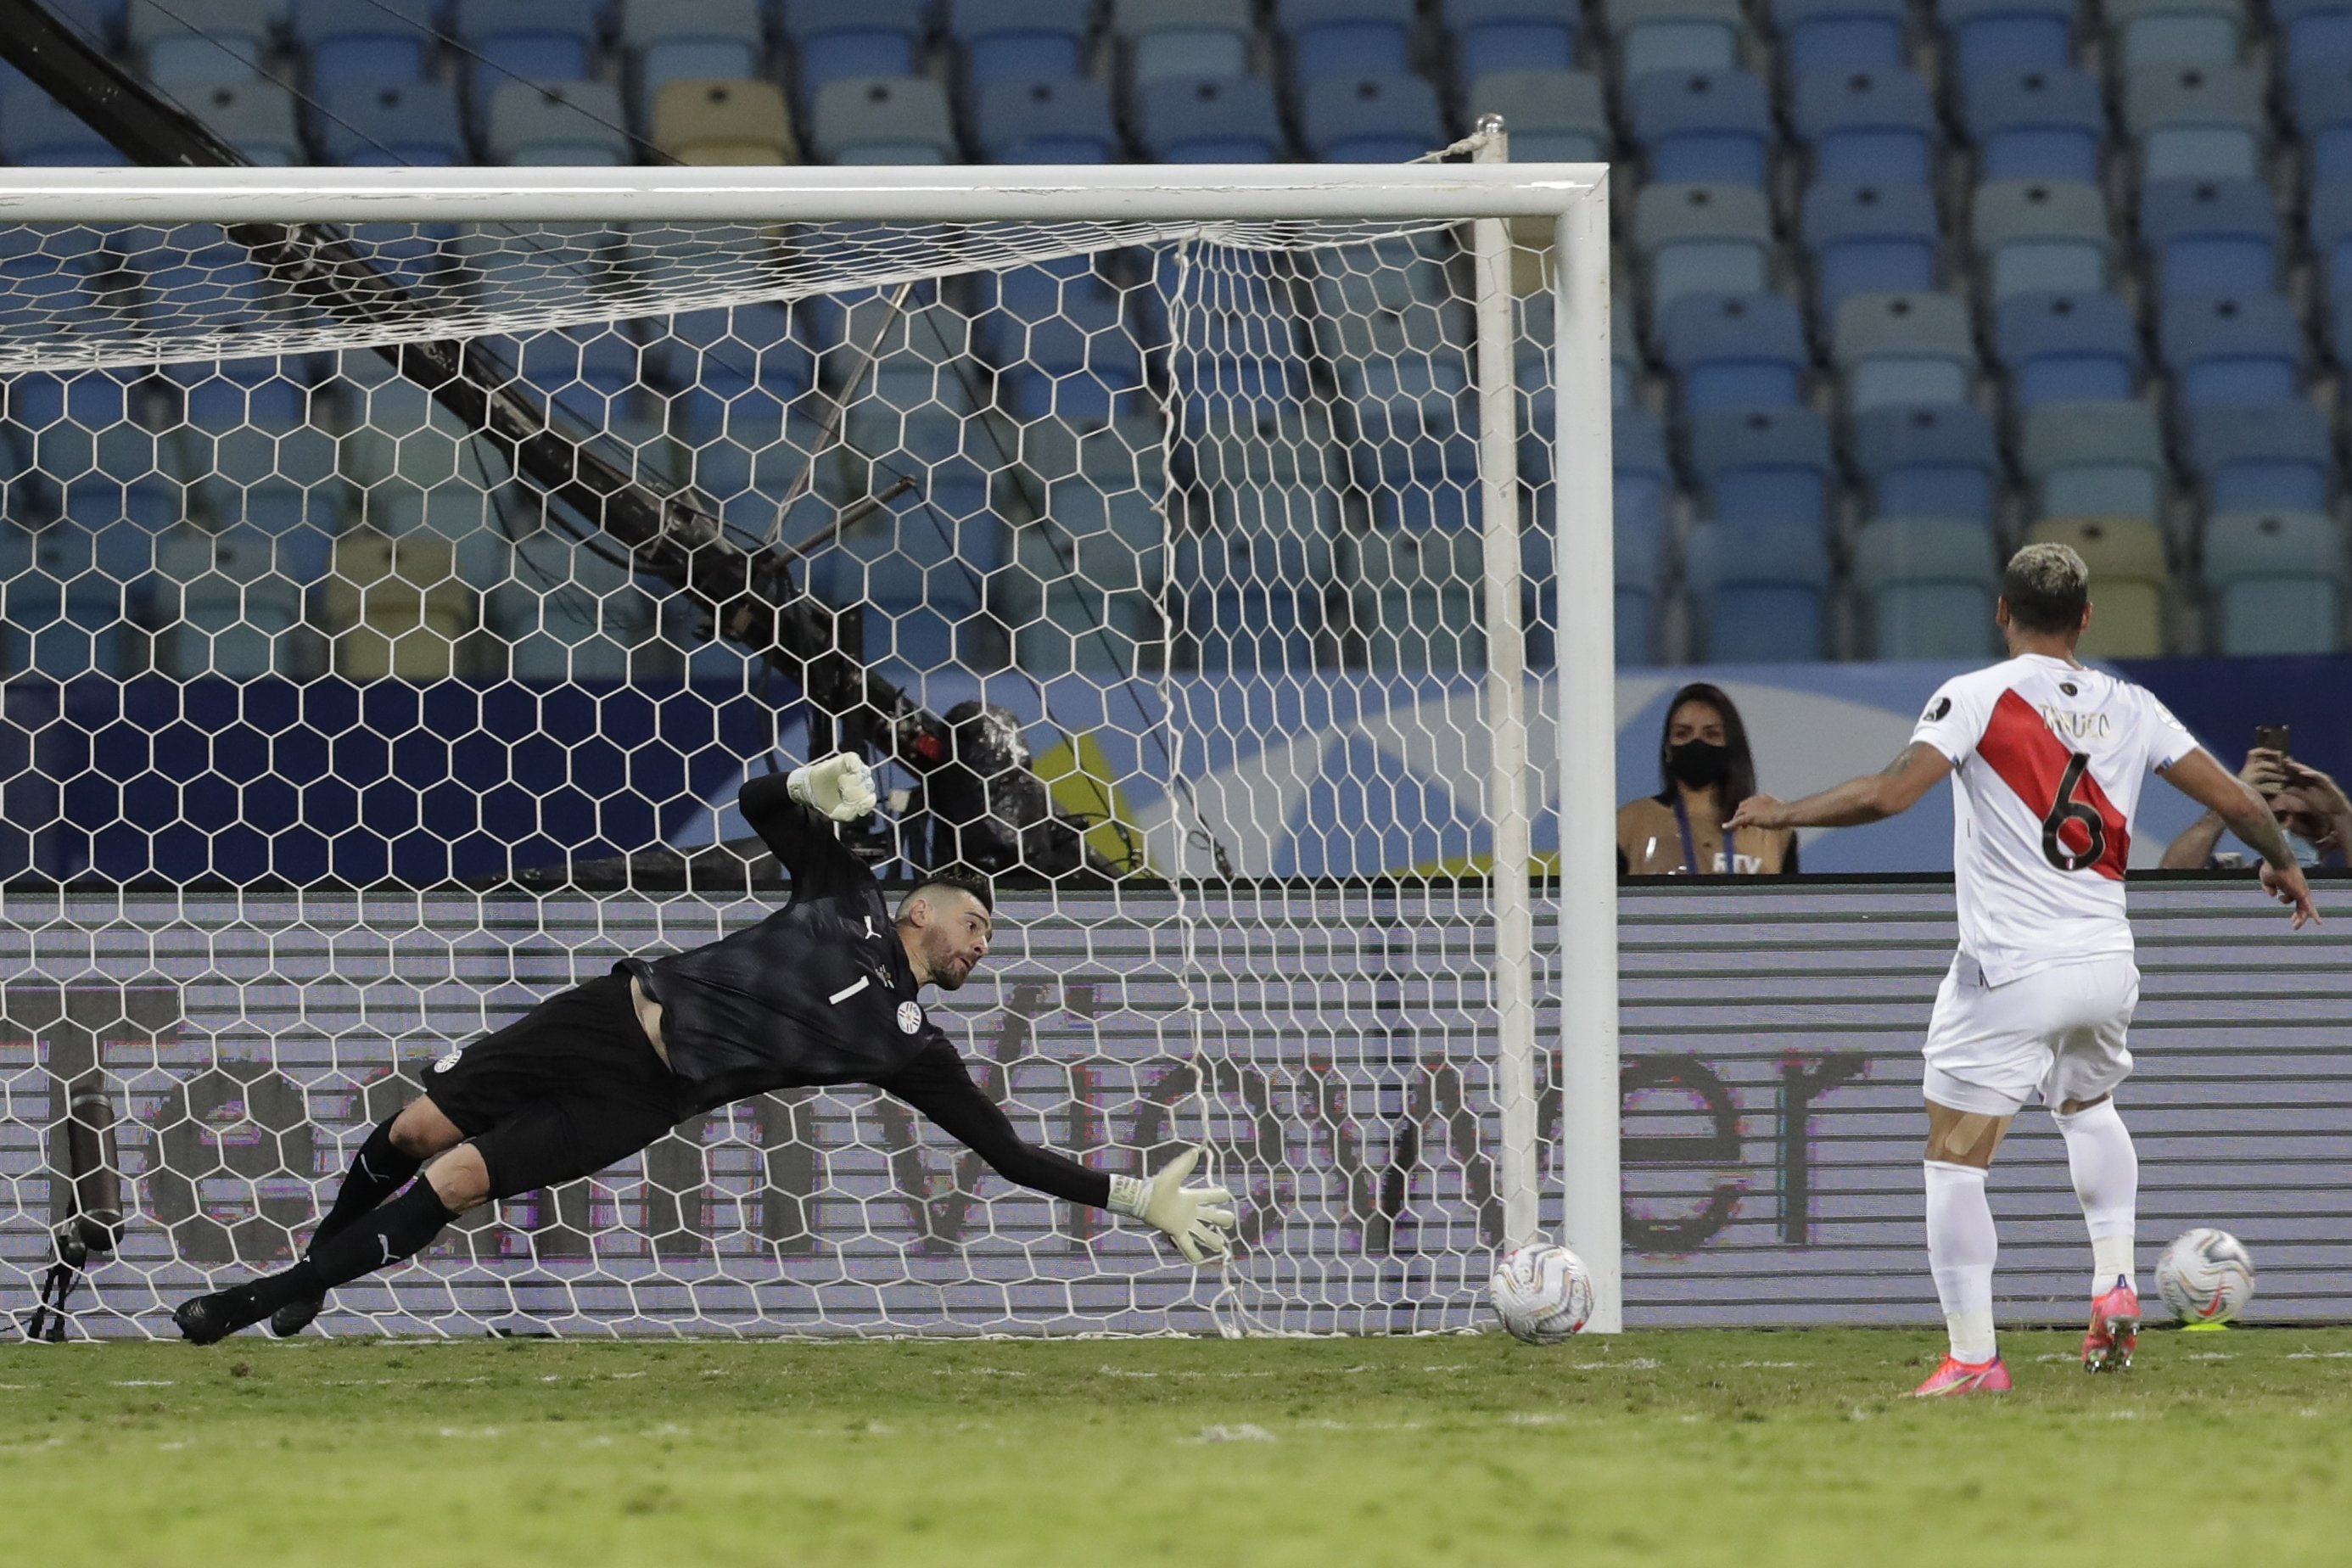 Peru's Miguel Trauco scores is side's winning goal in a penalty shootout during a Copa America quarterfinal football match at Olimpico stadium in Goiania, Brazil, July 2, 2021. (AP Photo)